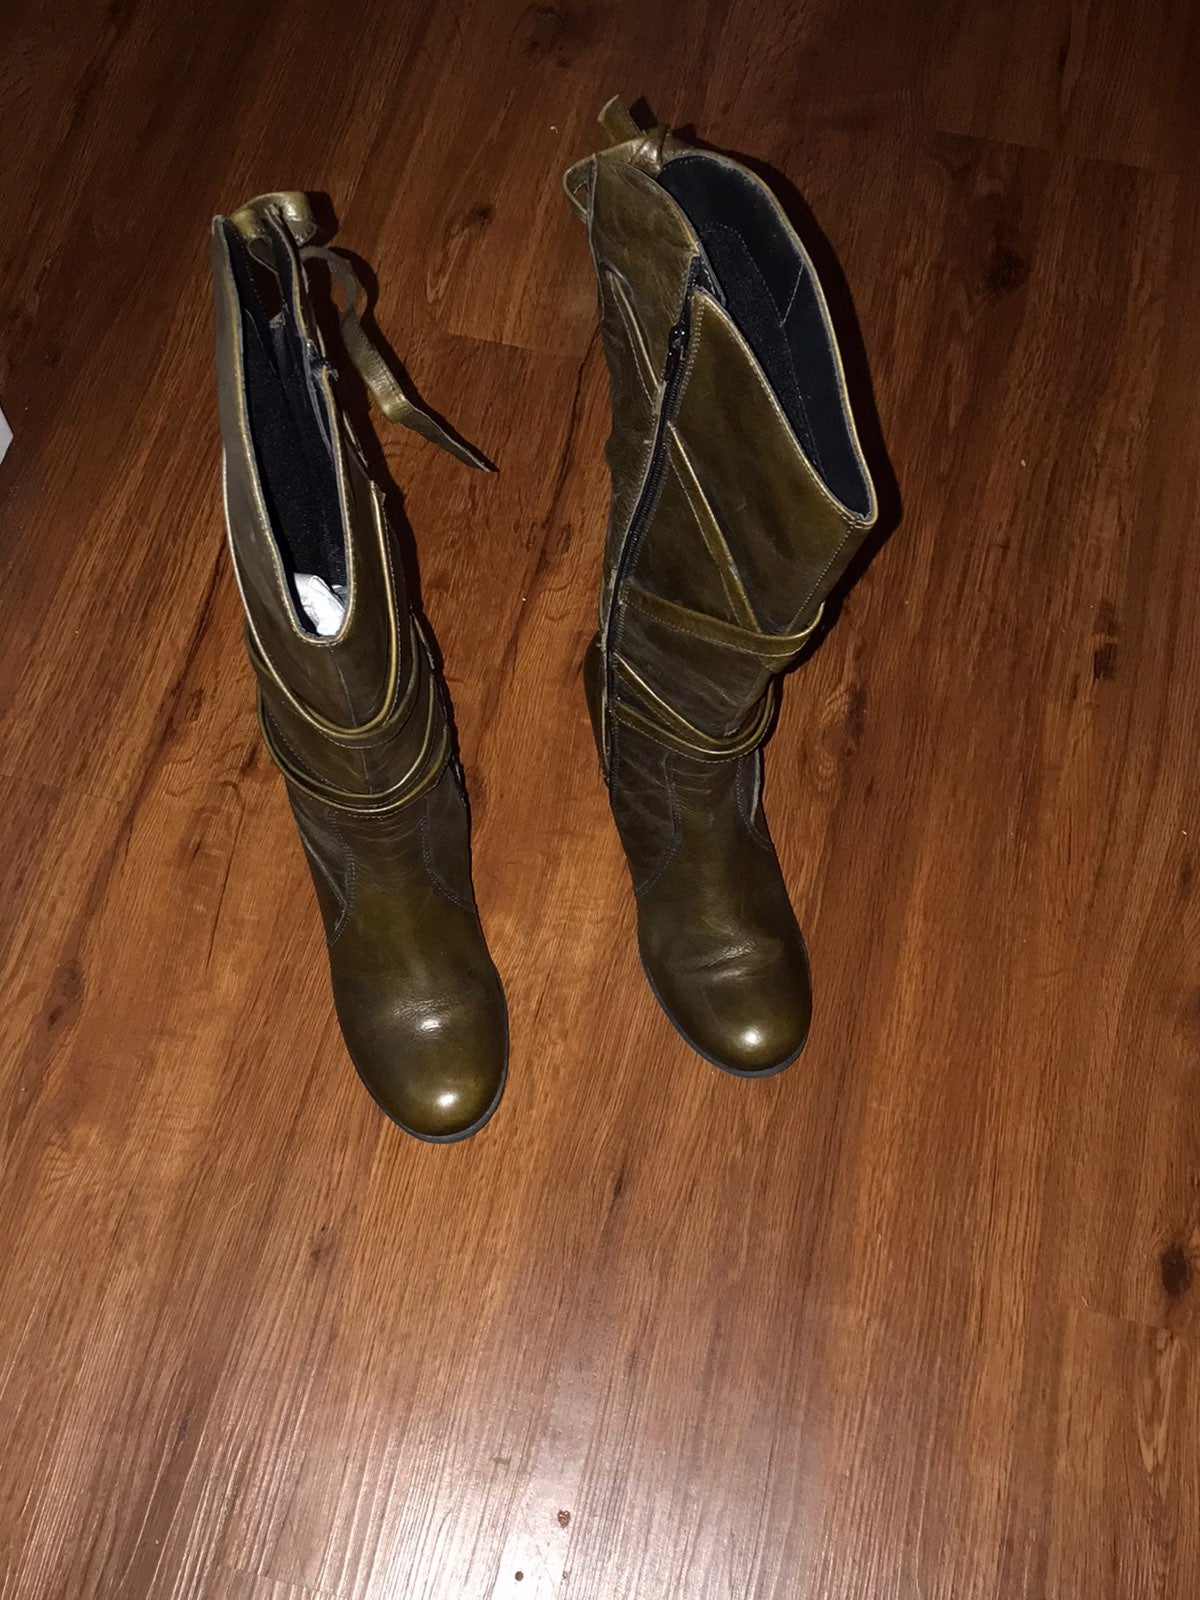 Olive Green Heeled BX boots by Bronx 8M